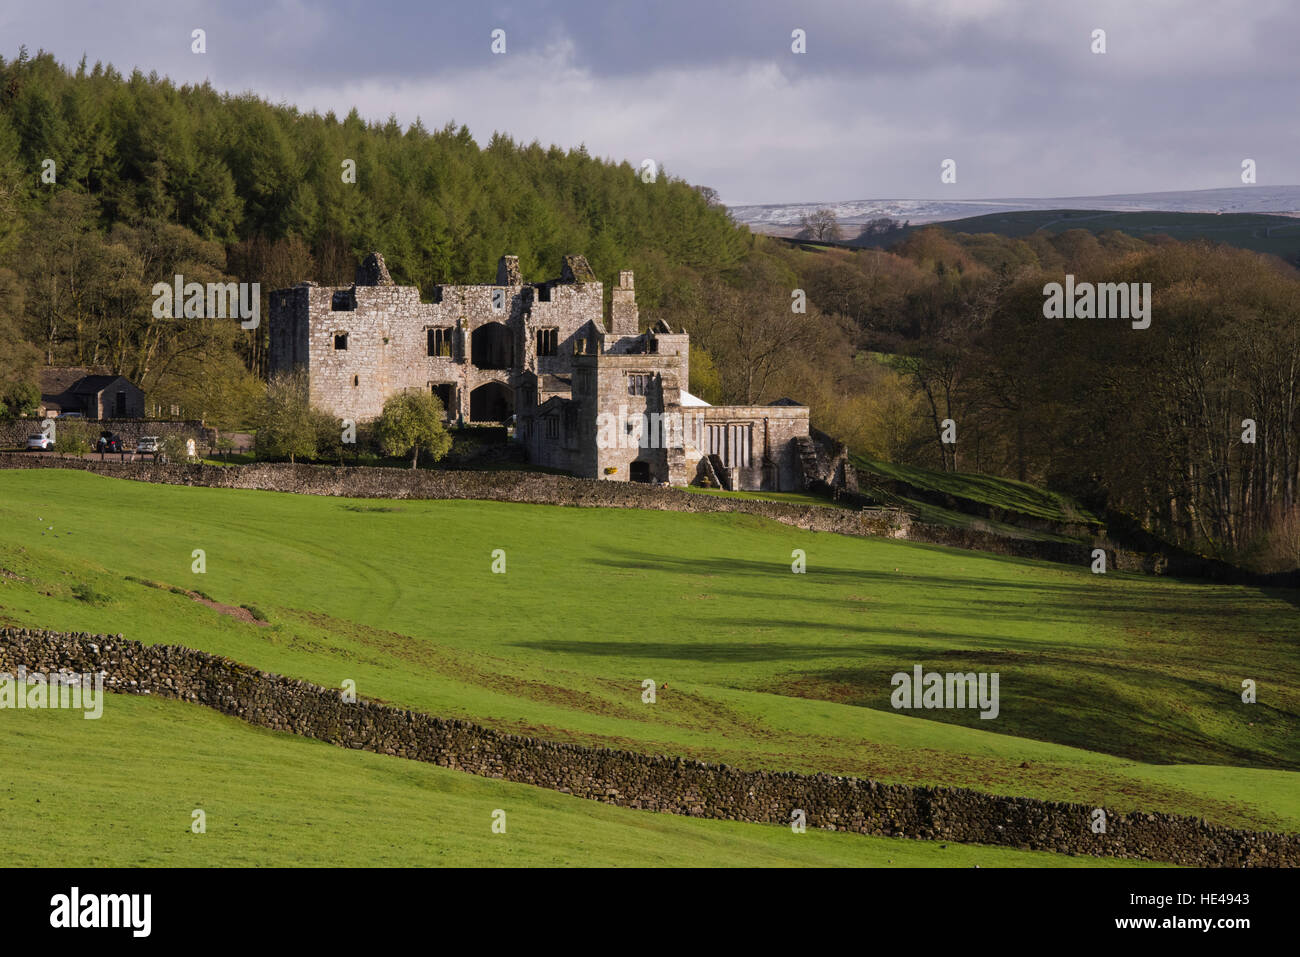 Barden Tower (sunlight on beautiful historic ancient ruin, hillside forestry trees, rolling hills) - Bolton Abbey Estate, Yorkshire Dales, England UK. Stock Photo